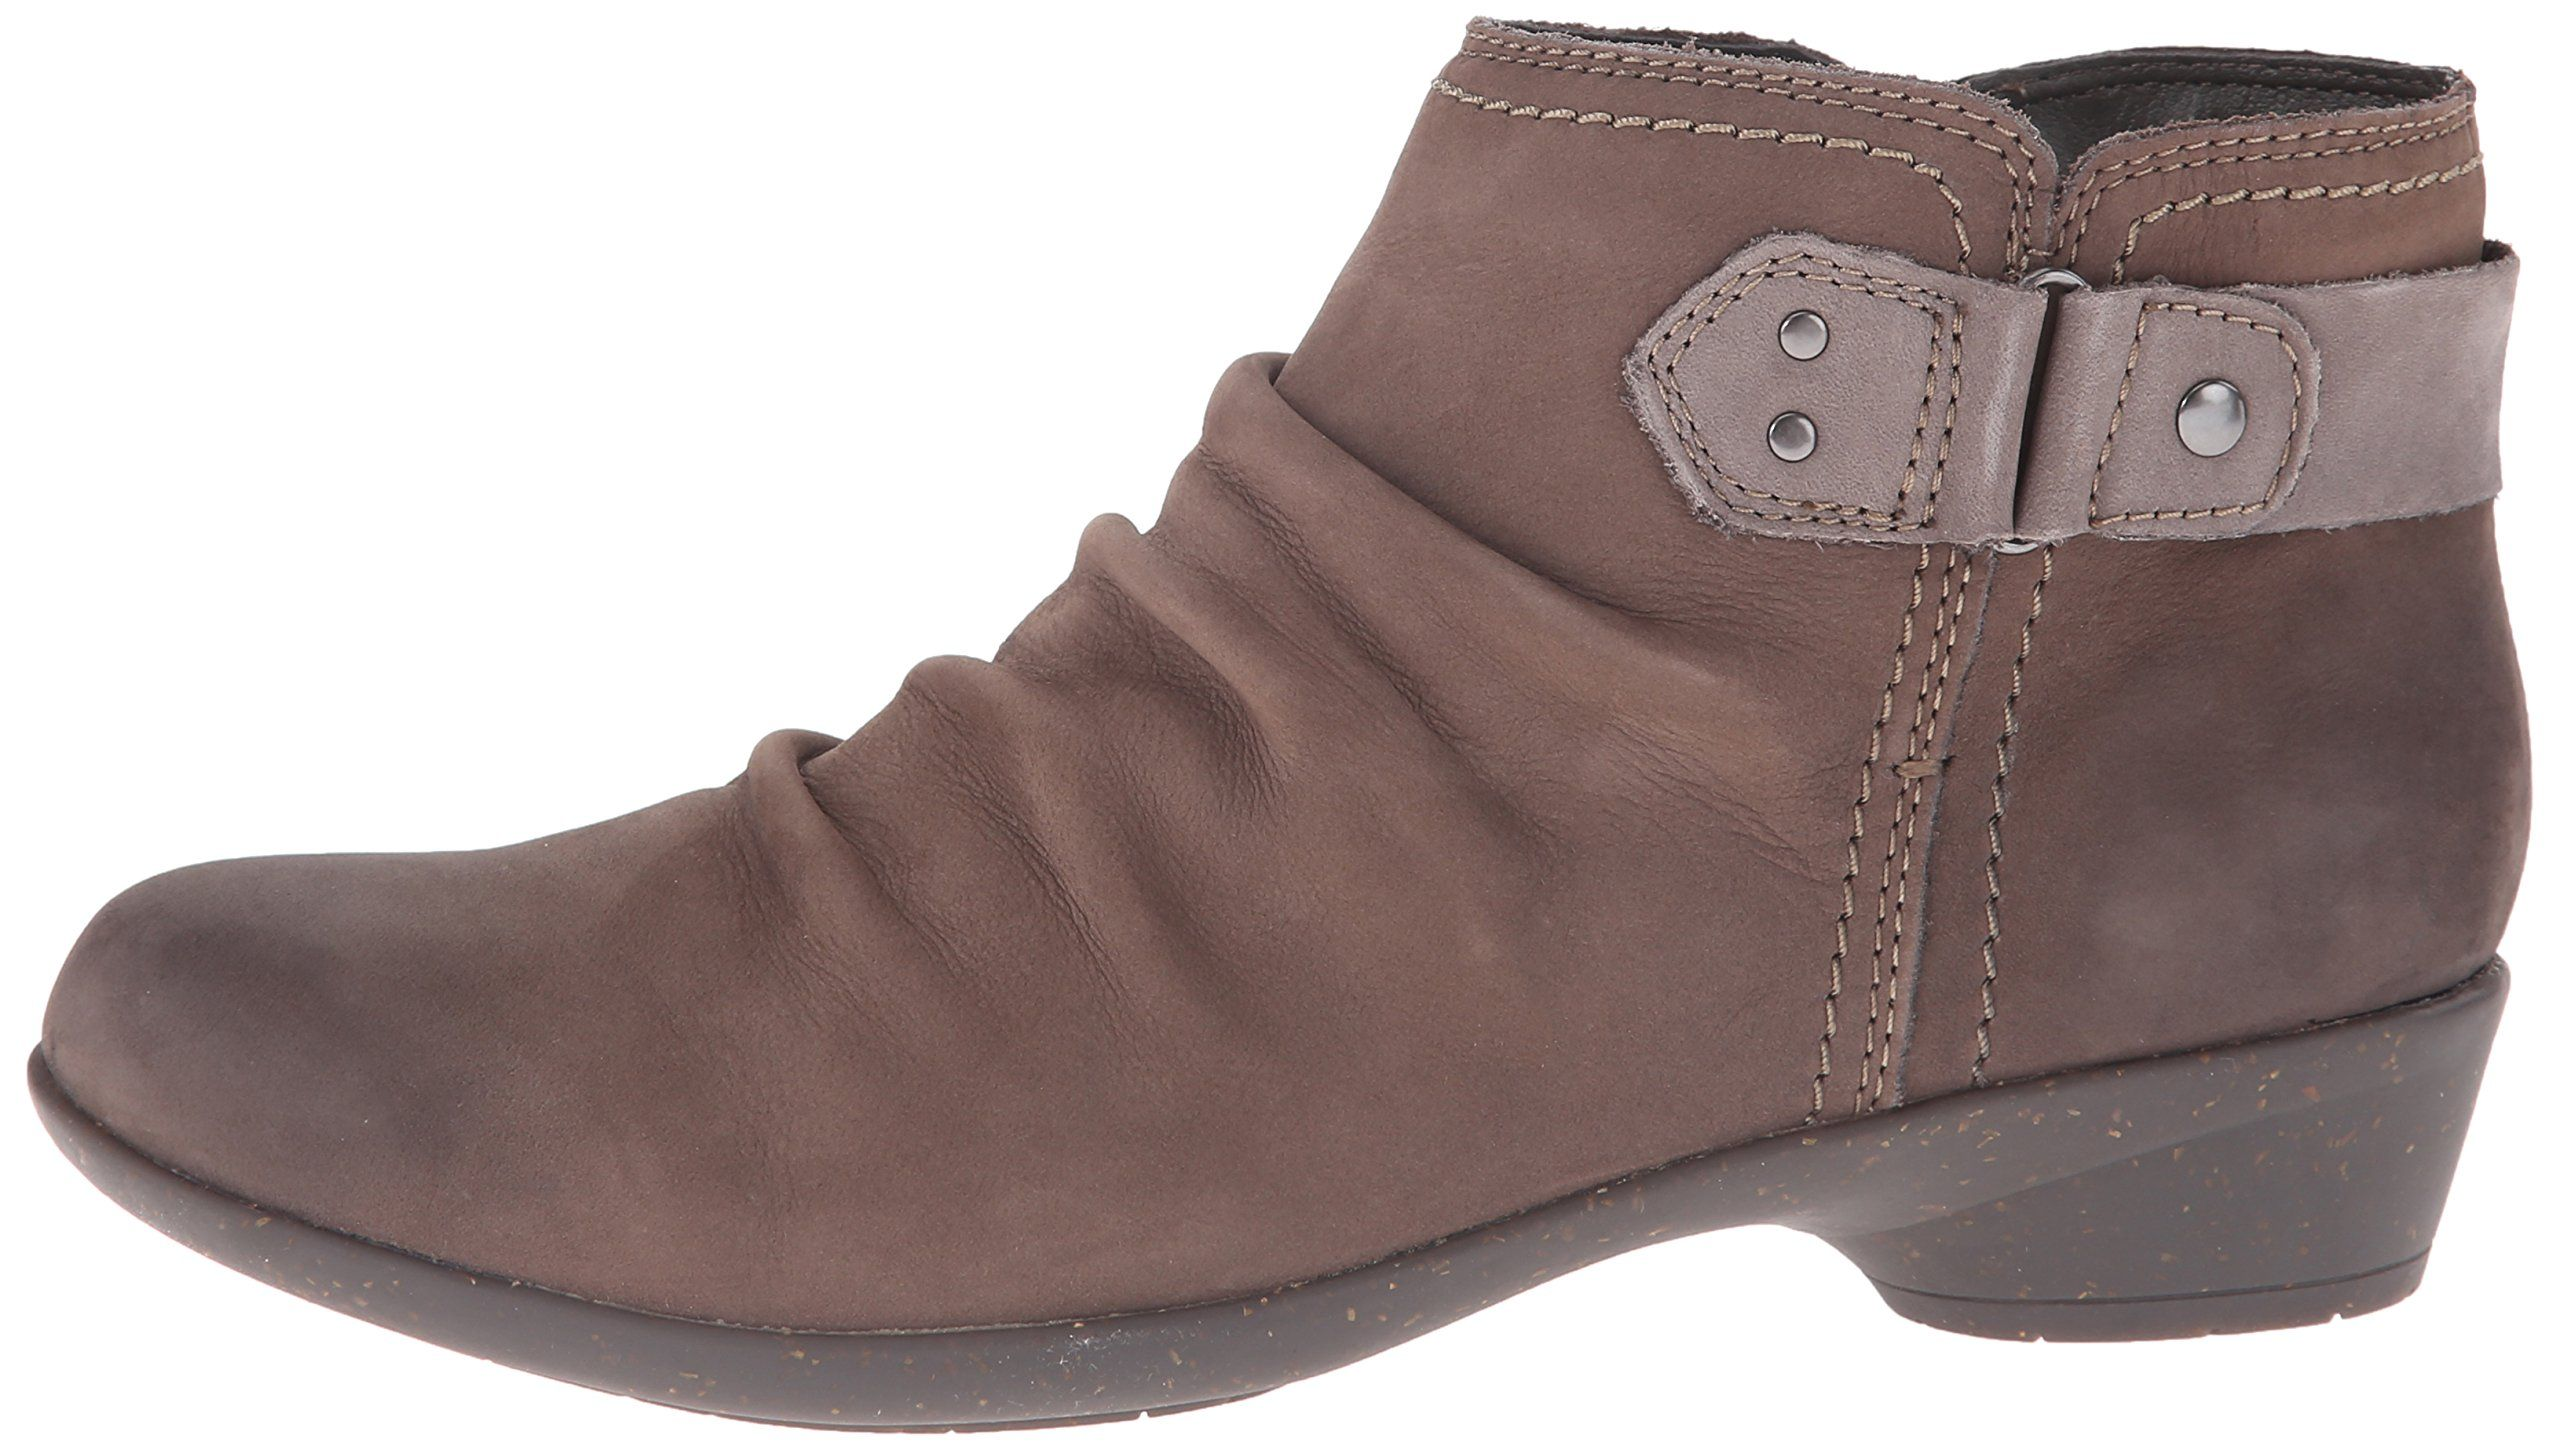 a9d98079ea418e Cobb hill rockport womens nicole boot stone us find out more about jpg  2560x1450 Nicole frye